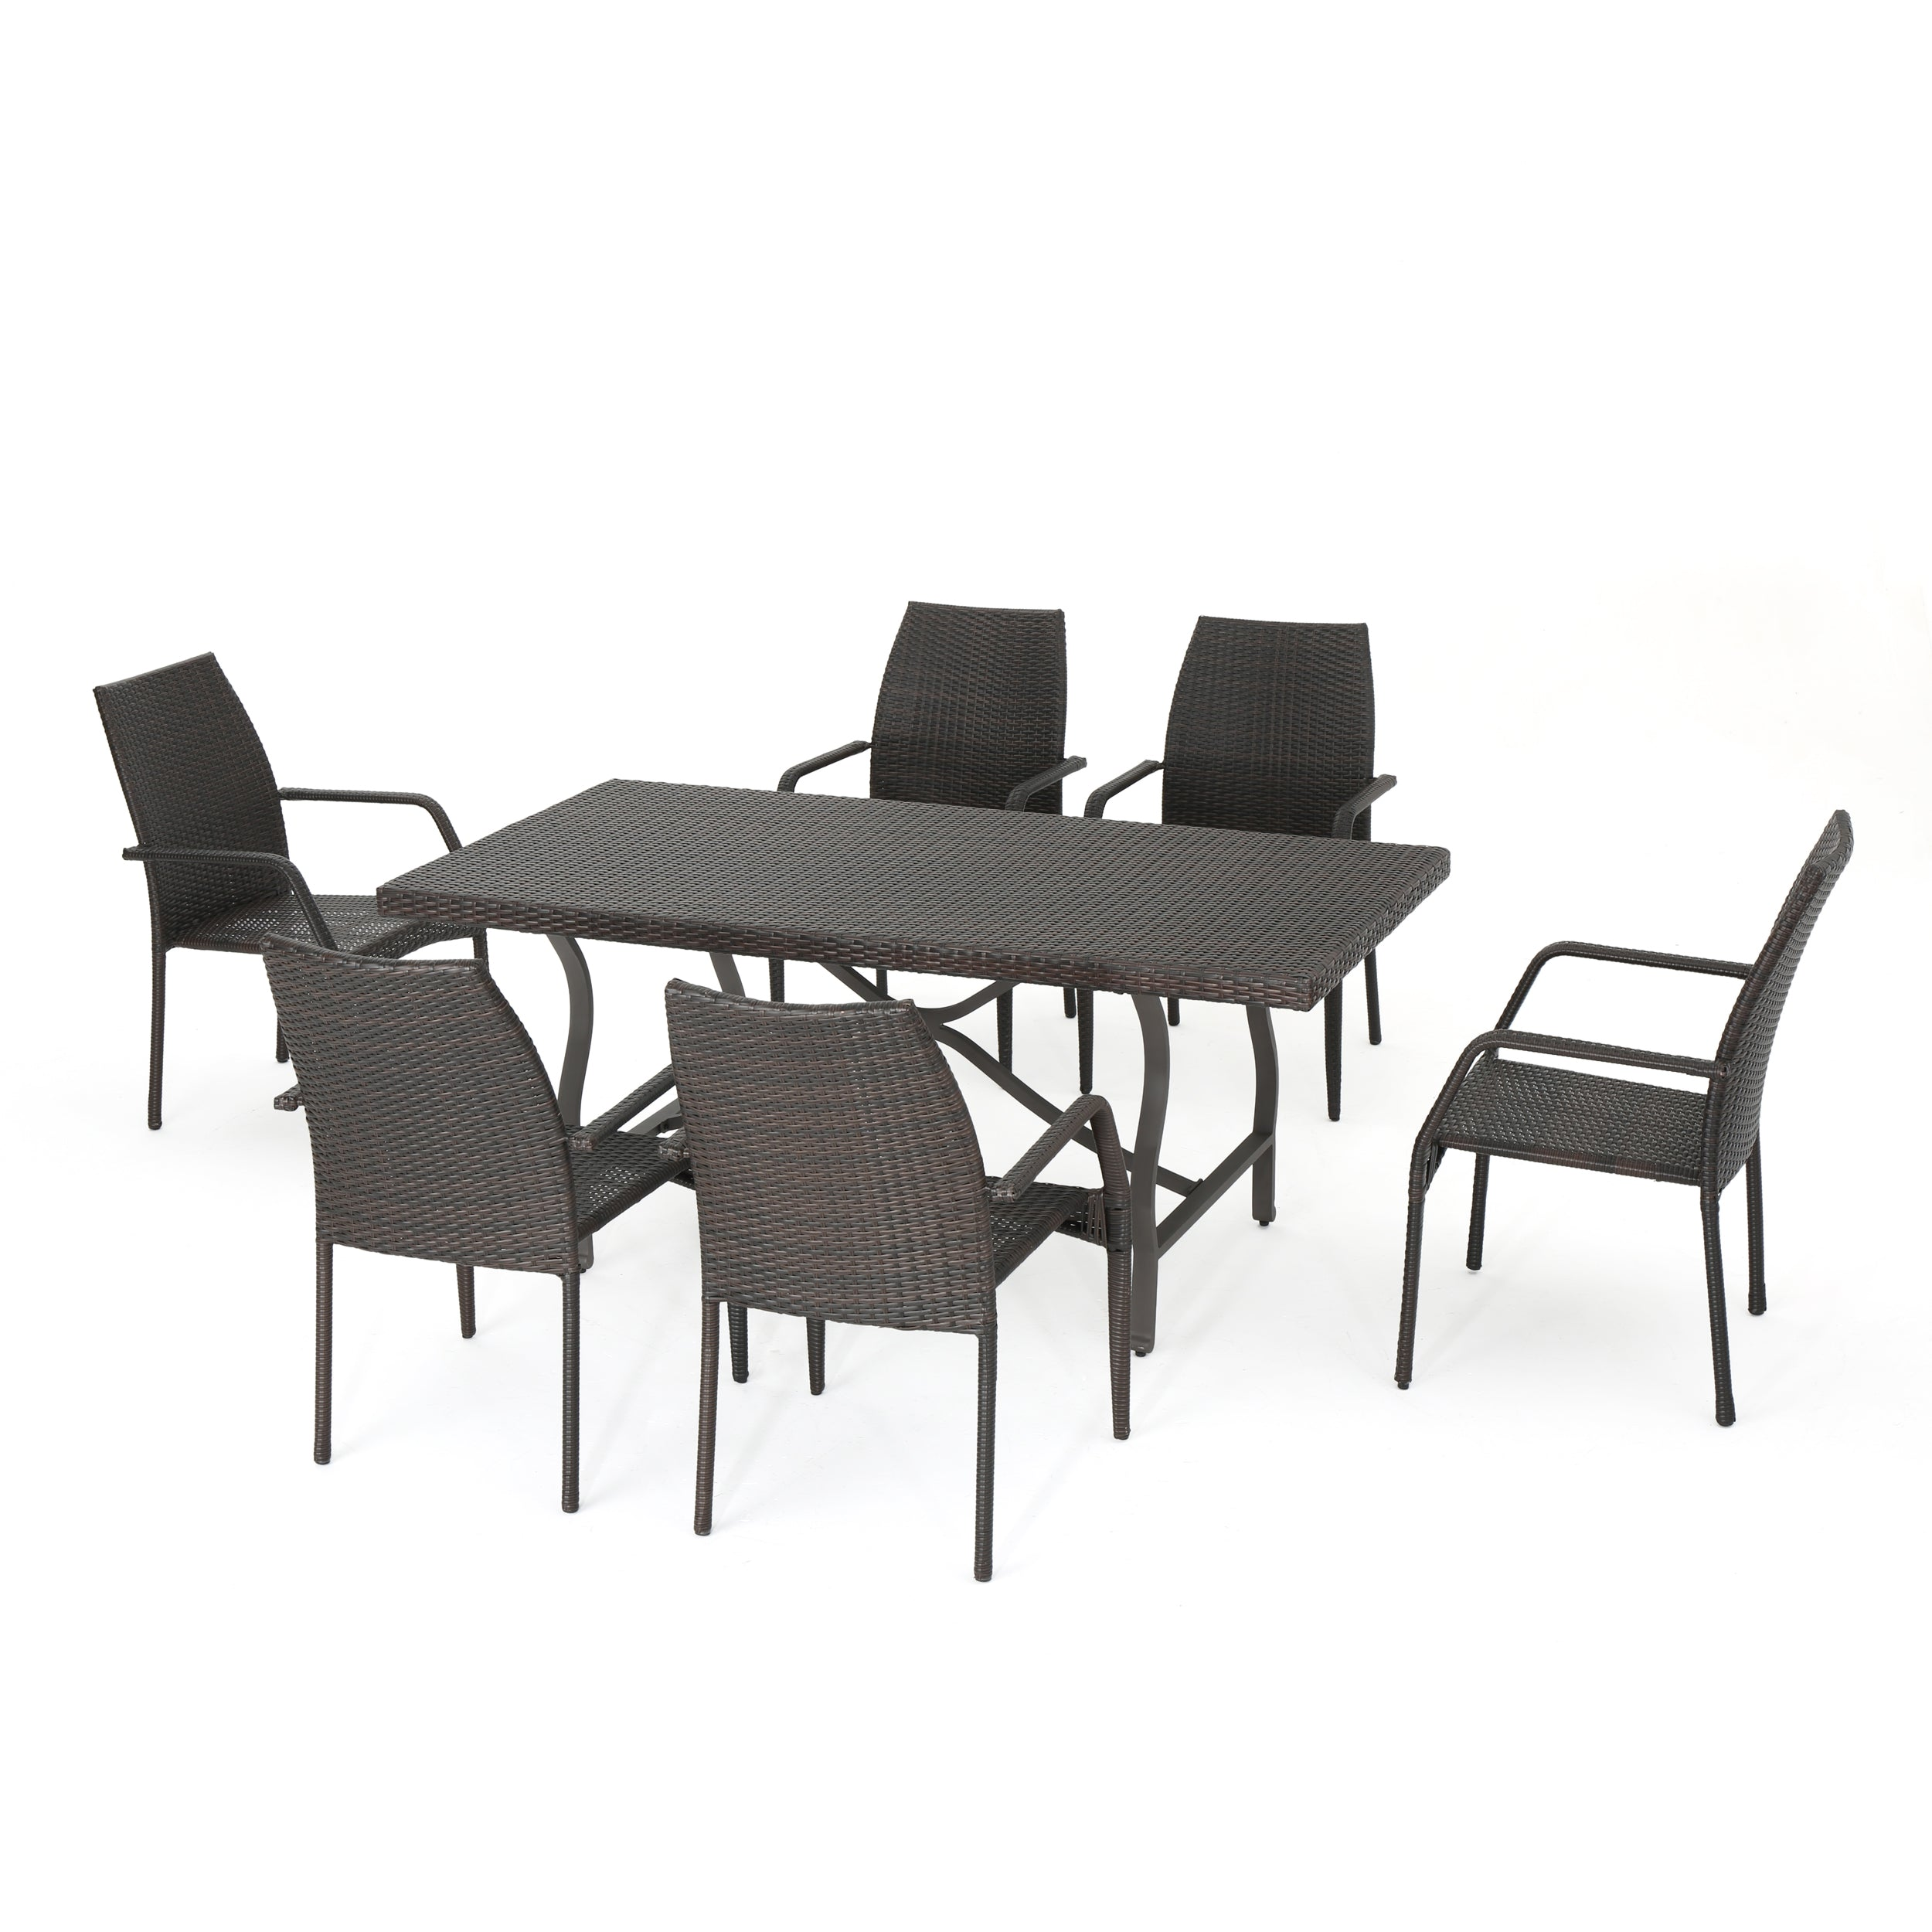 Alexi Outdoor Transitional 7 Piece Multi Brown Wicker Dining Set with Arm Chairs